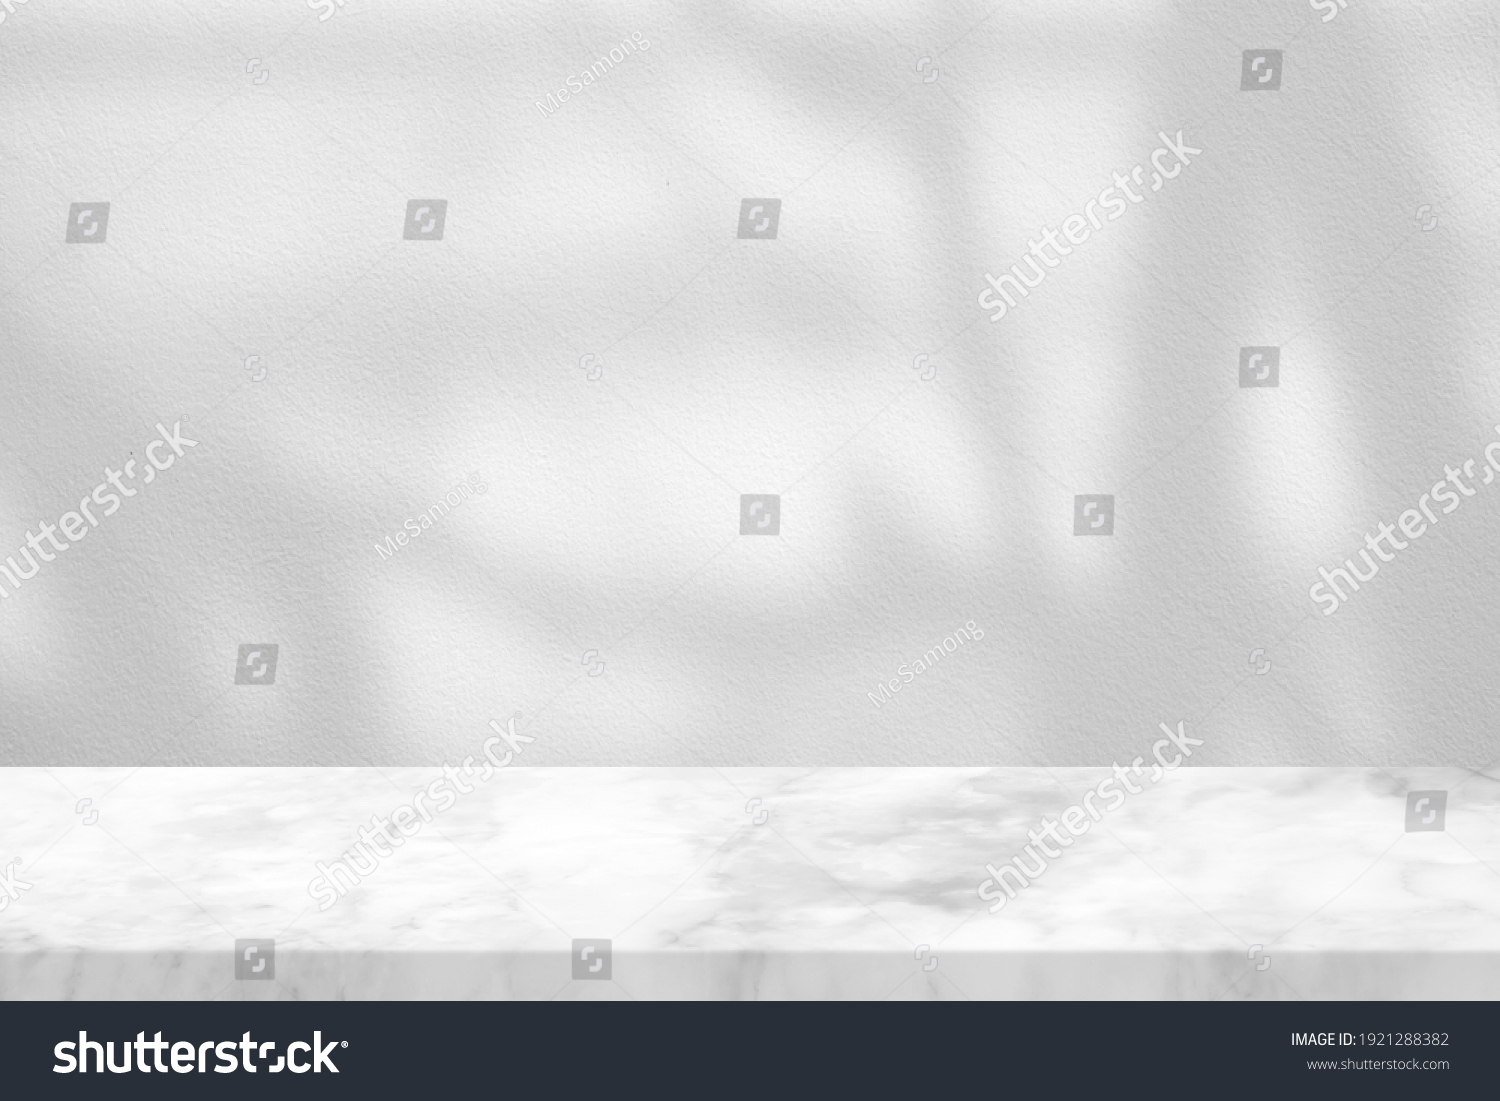 White Marble Table with Tree Branch Shadow on Concrete Wall Texture Background, Suitable for Product Presentation Backdrop, Display, and Mock up. #1921288382